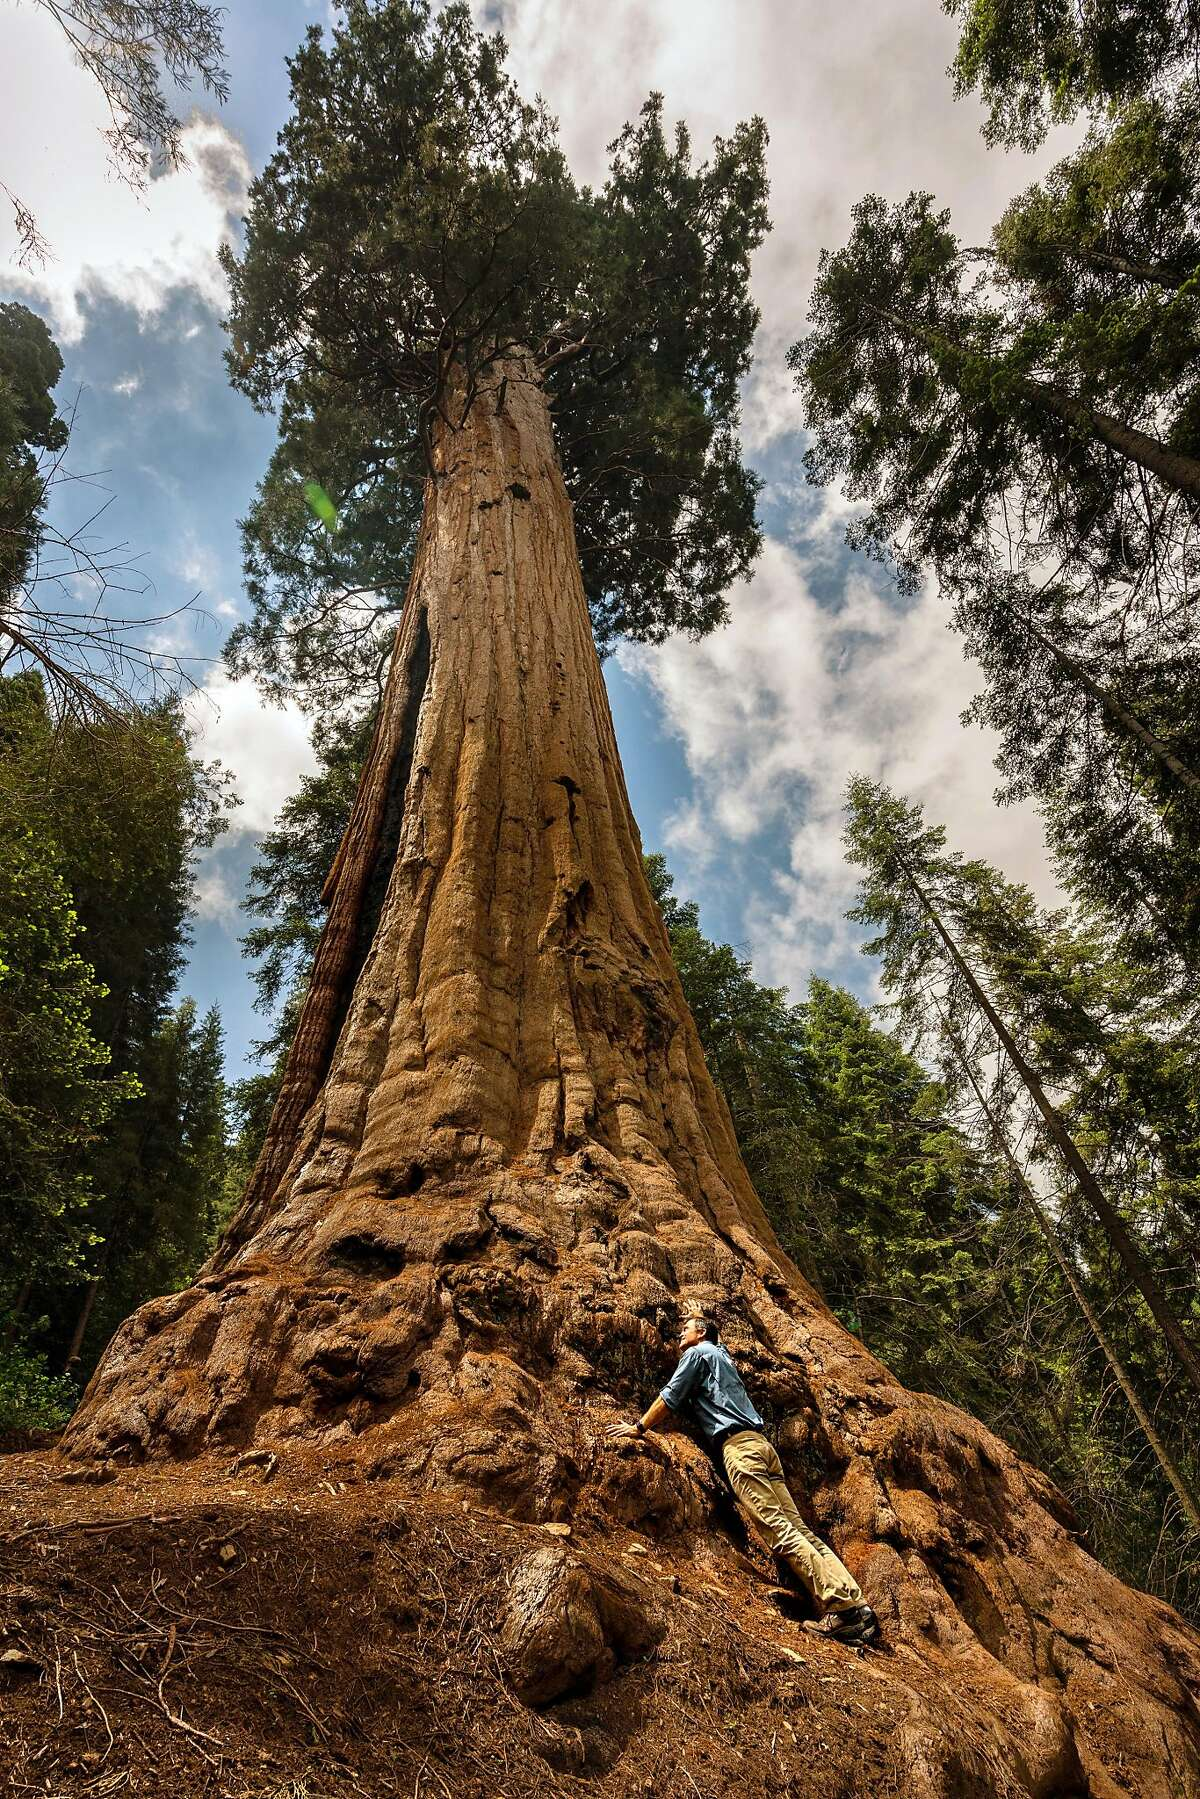 SEQUOIA CREST, CA-- Sam Hodder, President and CEO of Save the Redwoods, stands at the root system of the Stagg giant sequoia tree at Alder Creek on Friday, June 21, 2019. Mike Rouch and his brother Skip are selling a 530-acre stand of giant sequoia surrounded on three sides by Giant Sequoia National Monument and Sequoia National Forest. The stand of 500 ancient trees, called Alder Creek, is as large and magnificent as Yosemite�s Mariposa Grove of Giant Sequoias and holds the title of the world�s largest privately owned sequoia forest in the world -- but that title will only last until September when a deal by Save the Redwoods League to buy Alder Creek goes through.